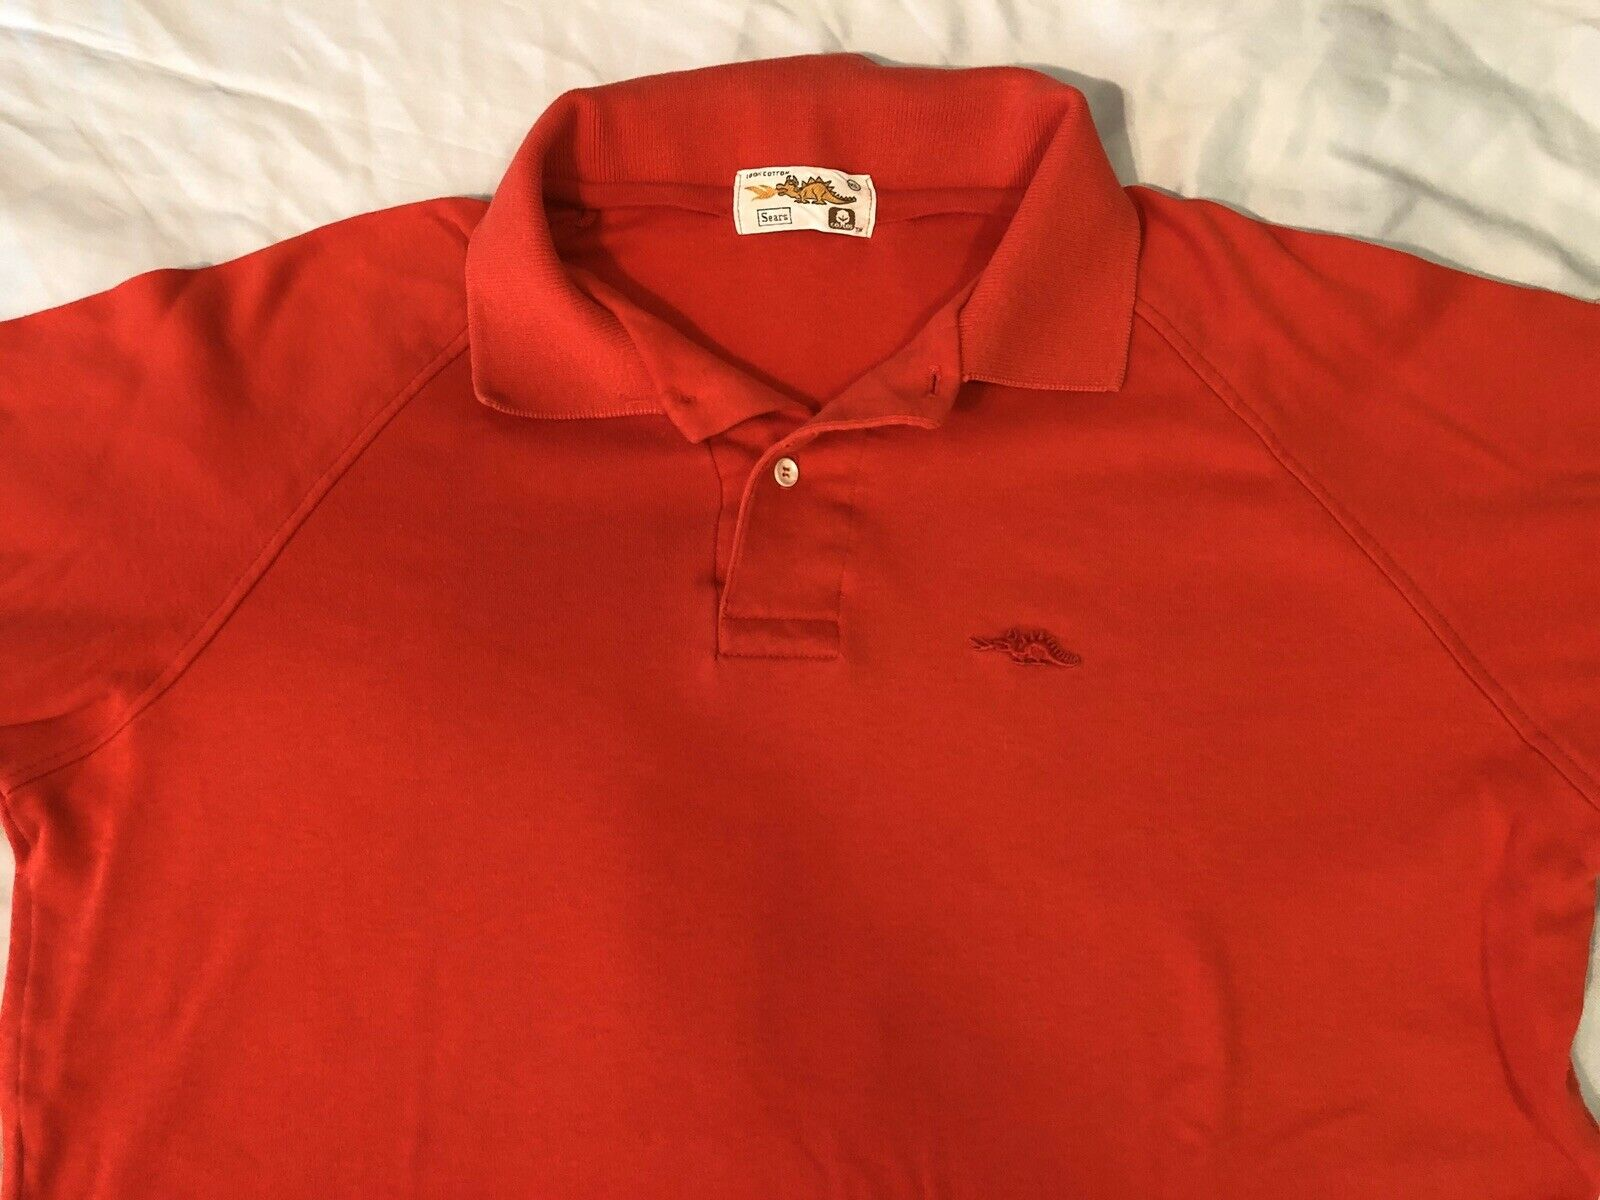 Vintage 1980s 80s Sears Dragon Polo T-Shirt, Red … - image 3